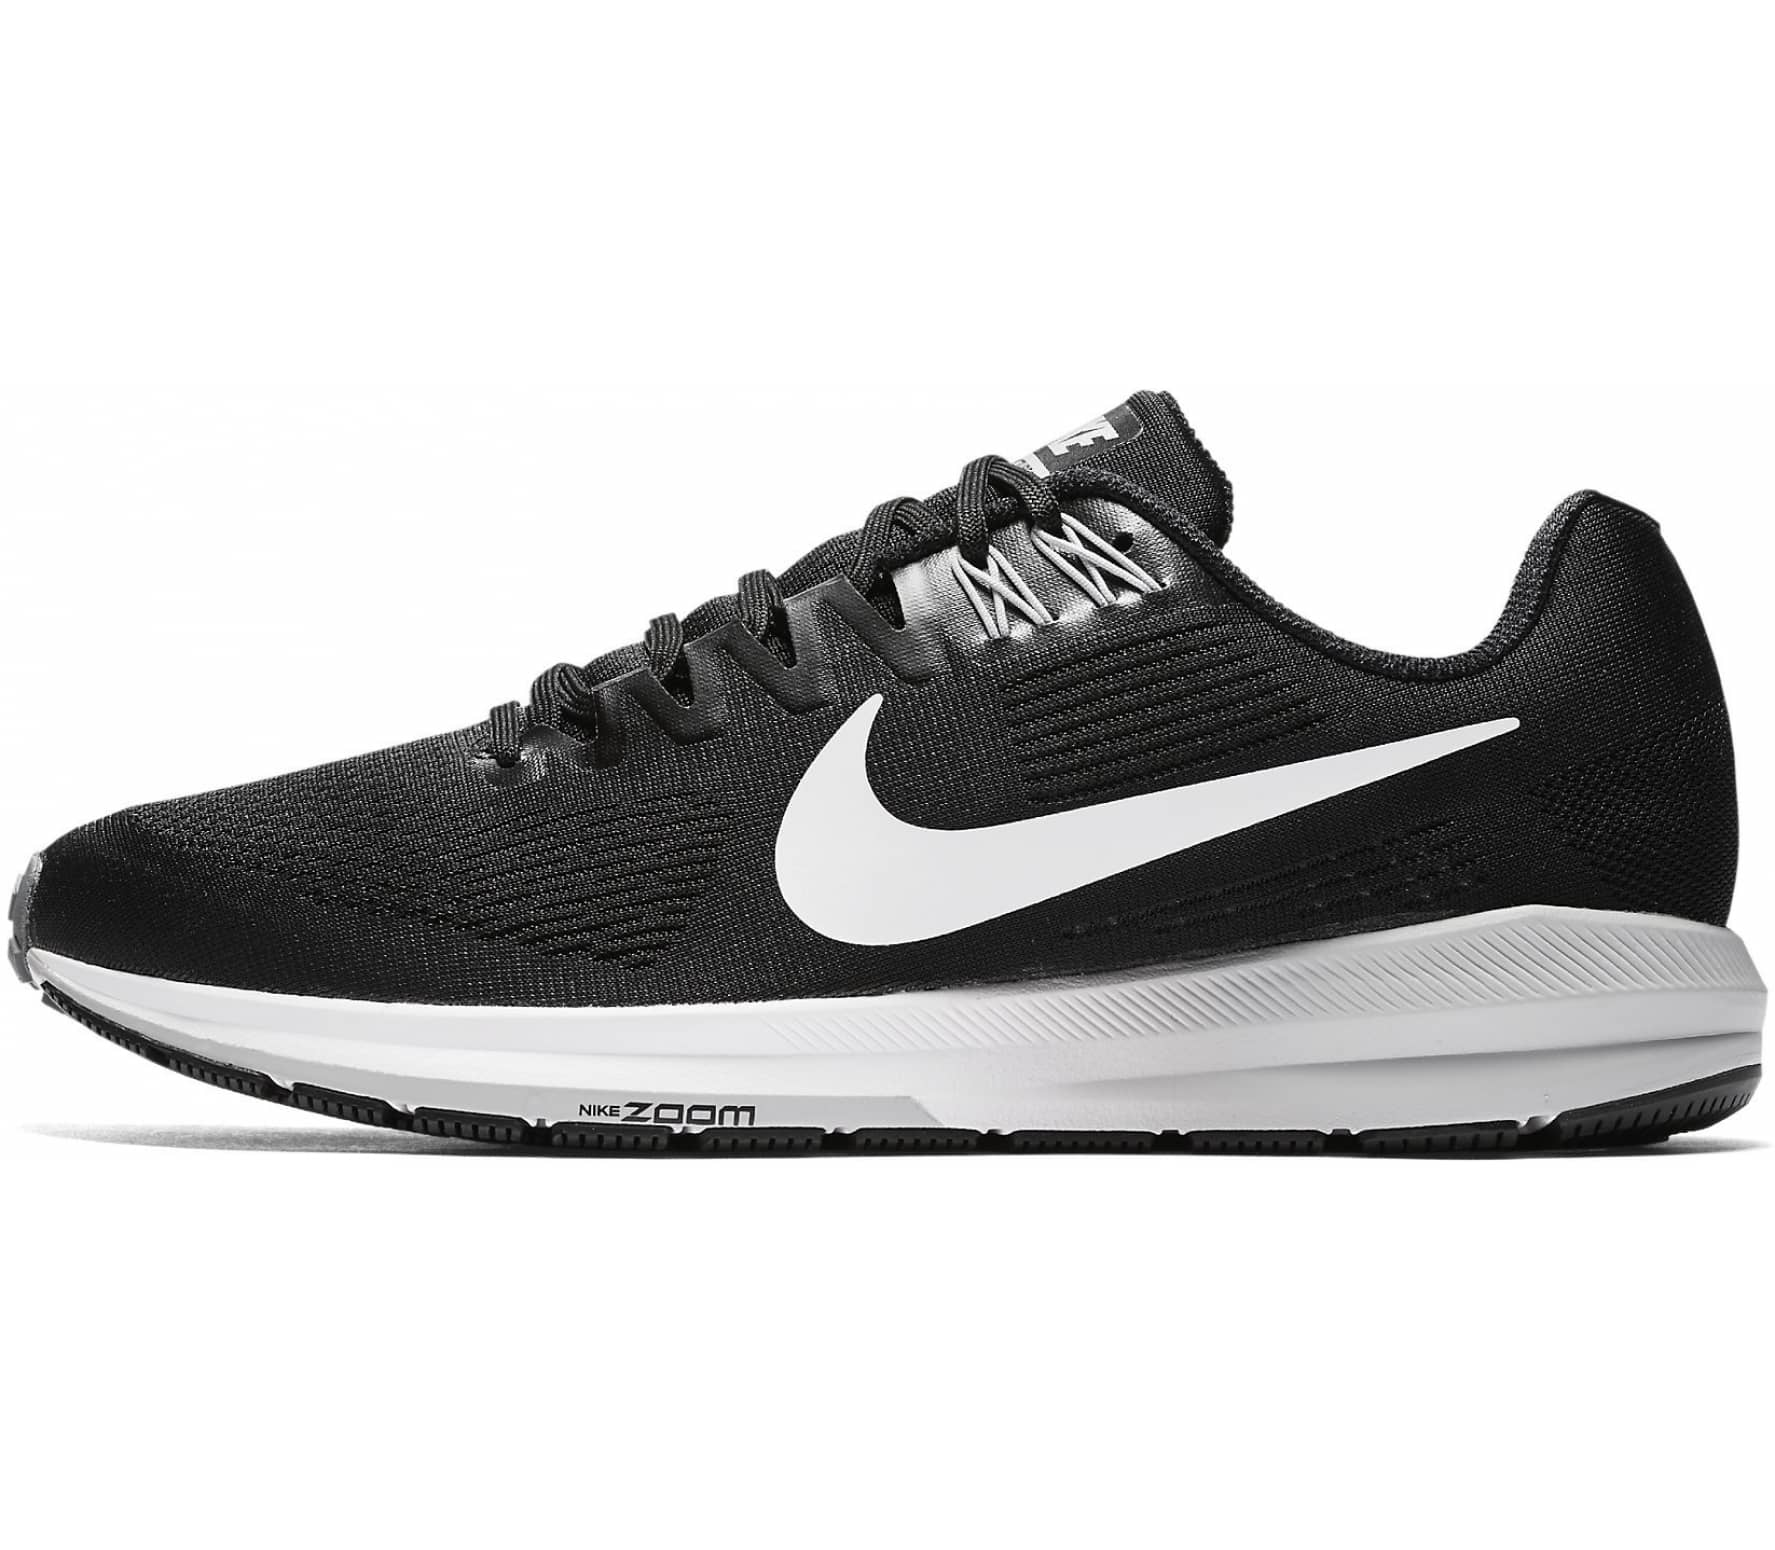 timeless design 7c006 f47ed Nike - Air Zoom Structure 21 men s running shoes (black grey)